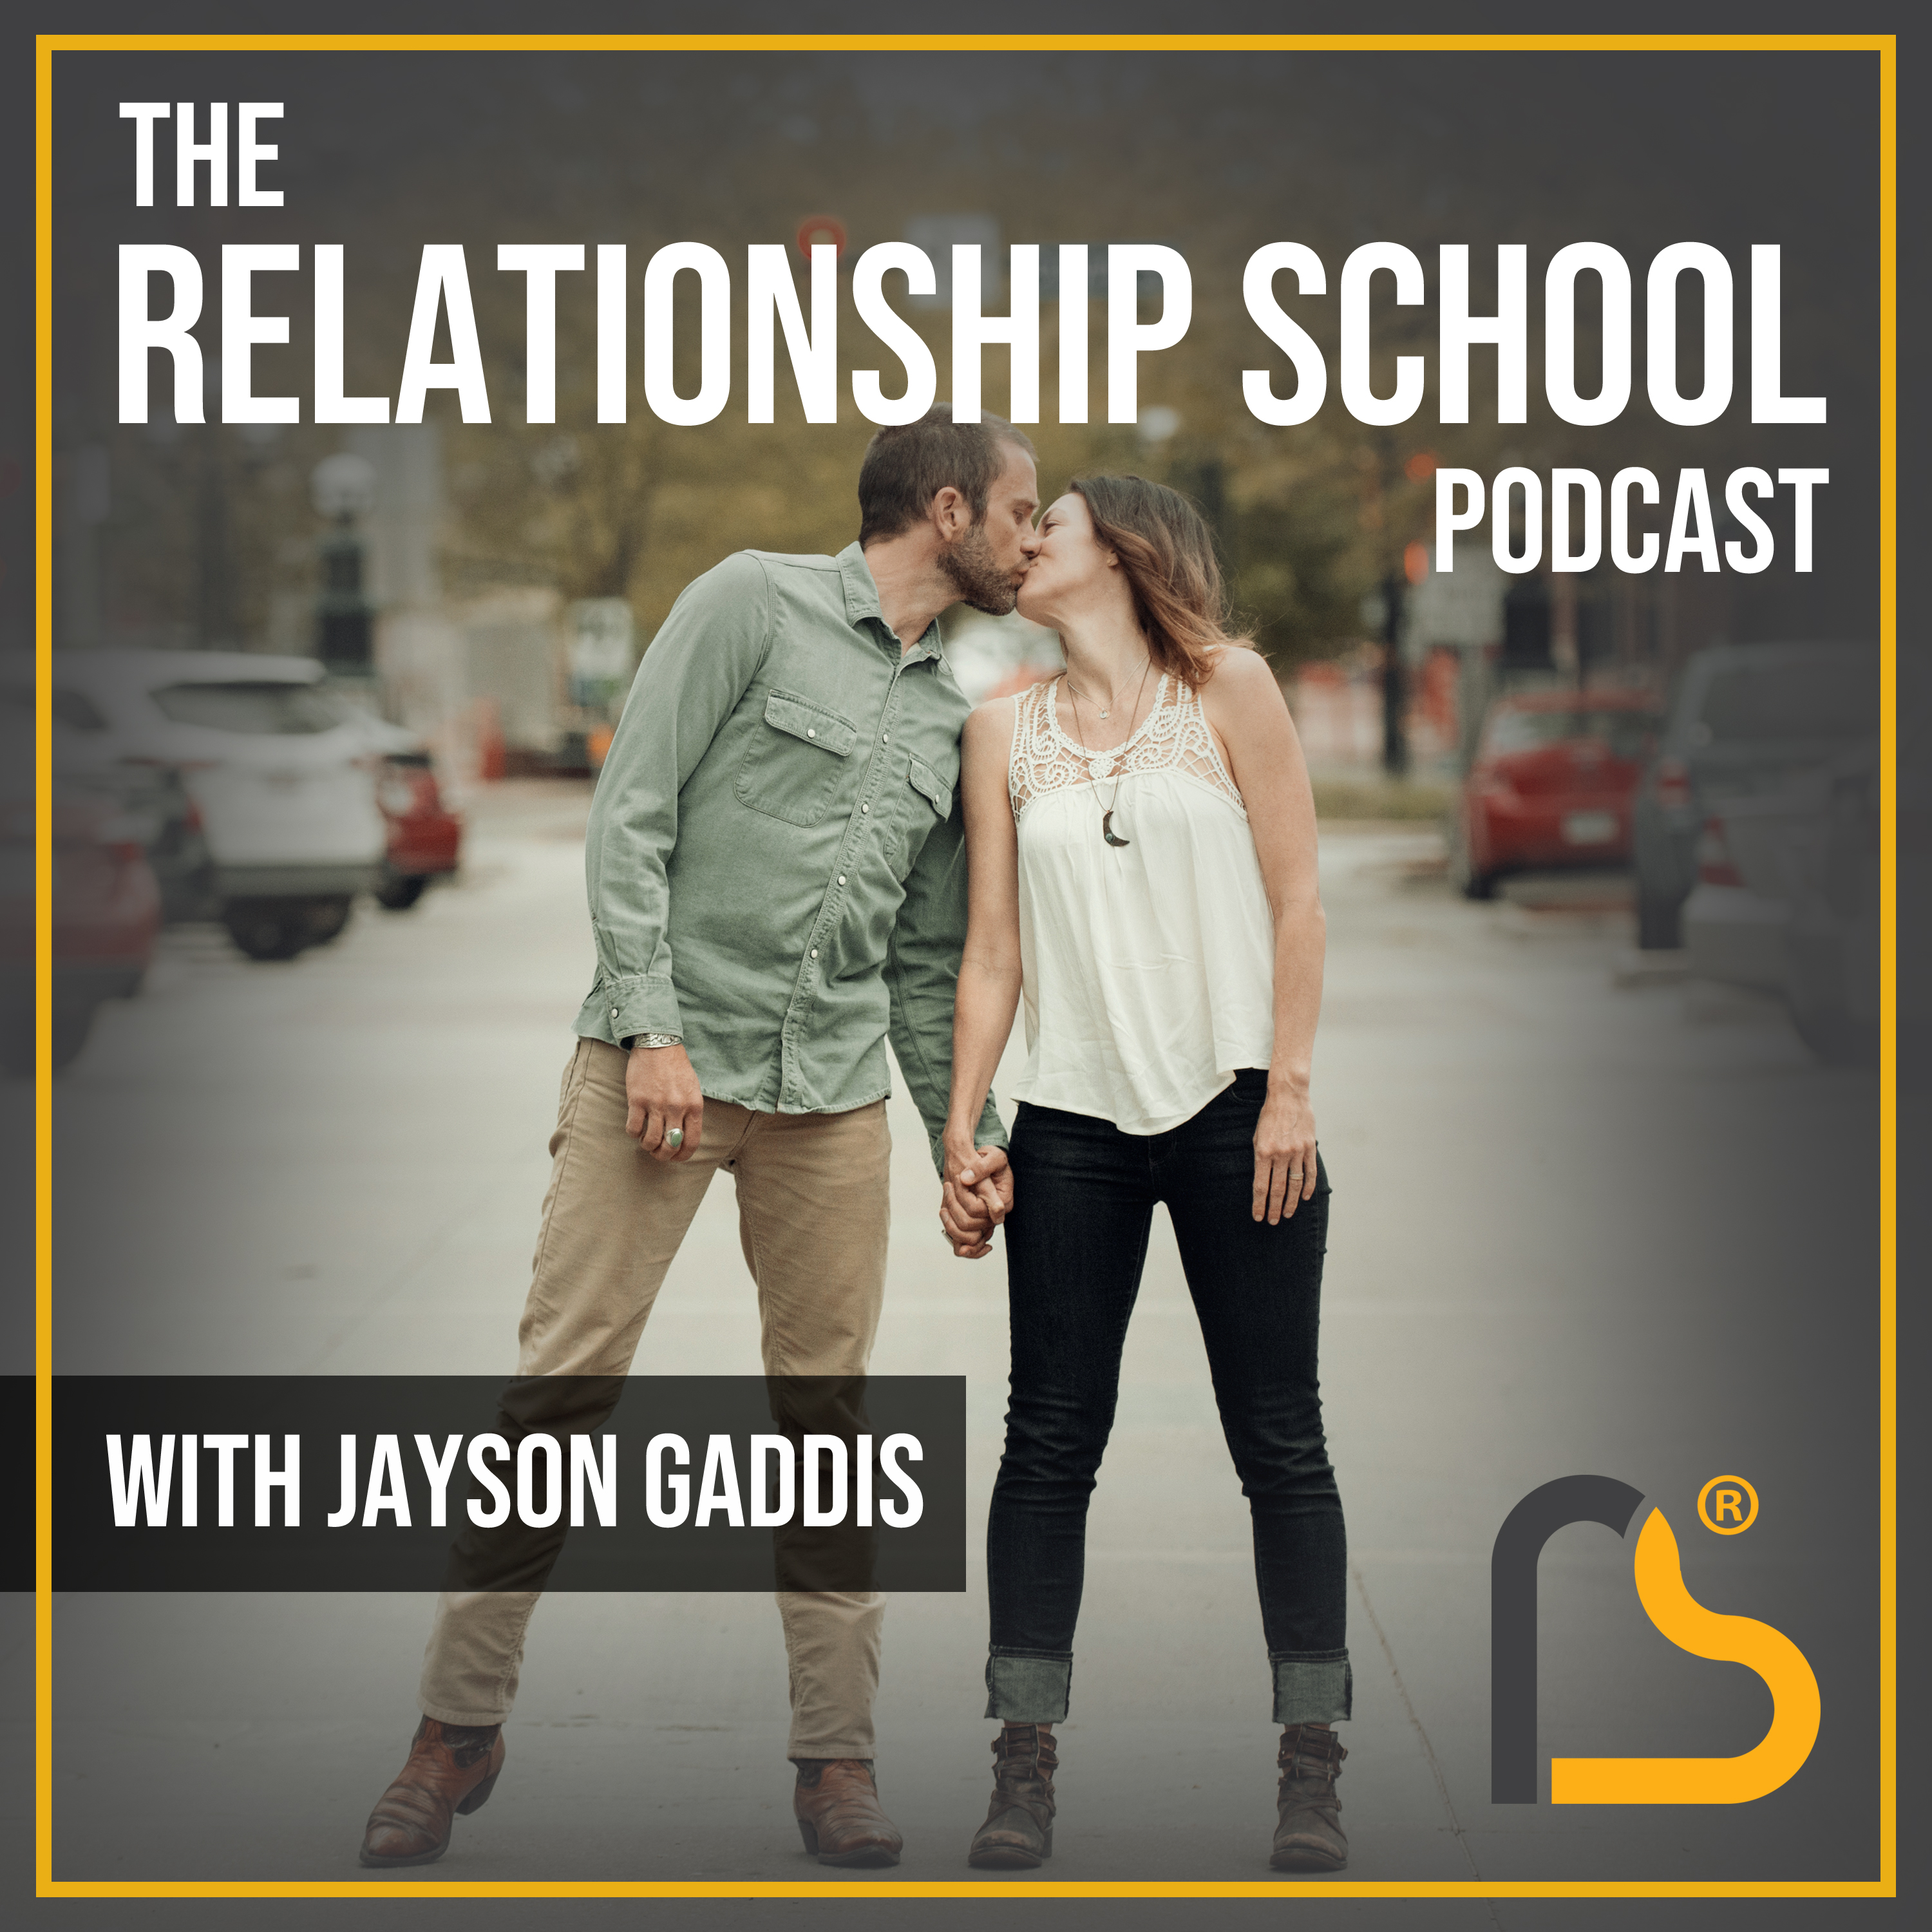 The Relationship School Podcast - The 4 S's of Attachment-Based Parenting - Dan Siegel - 276